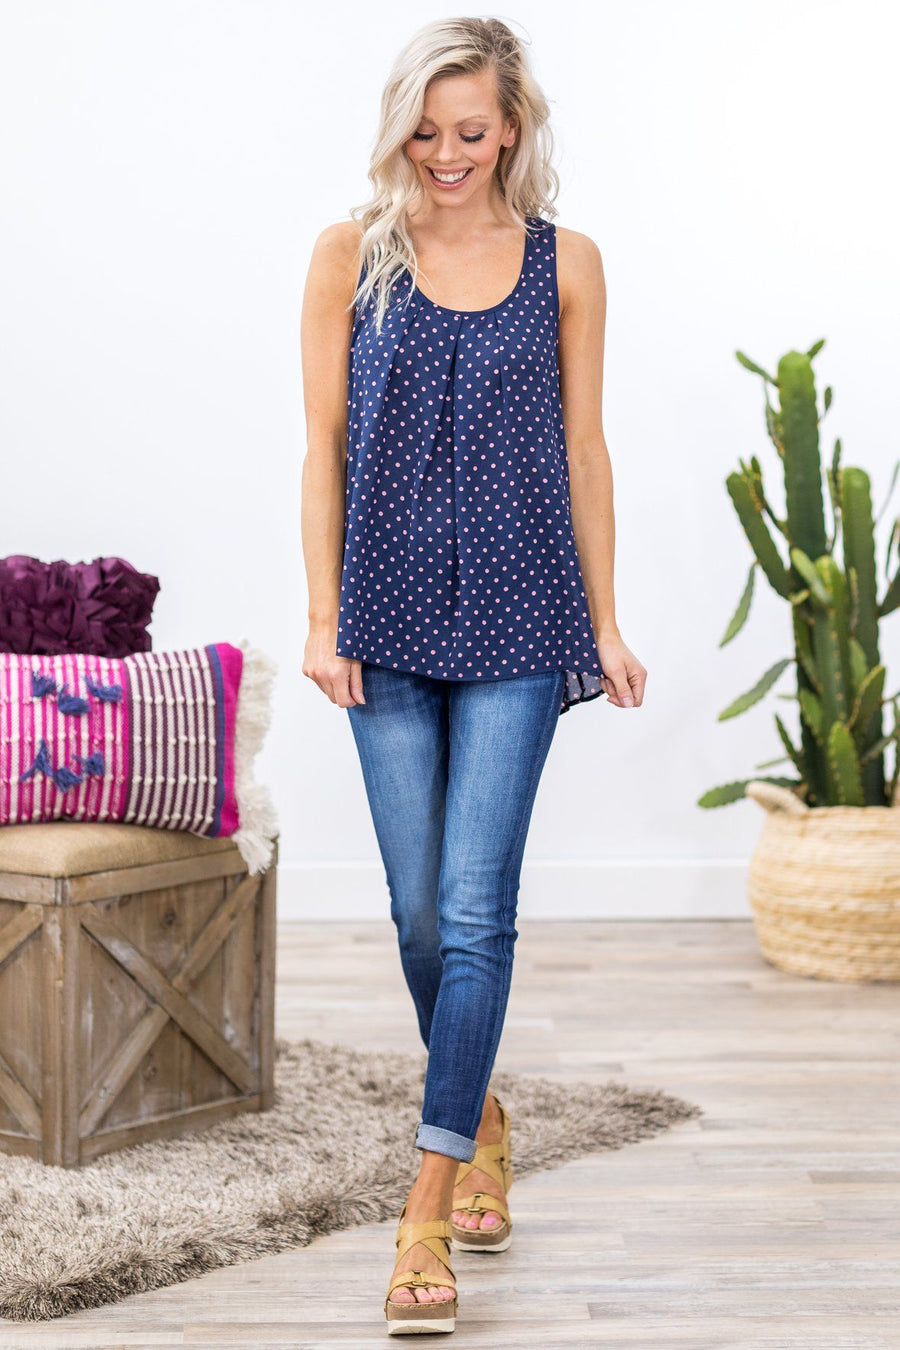 dab151865a7a15 Sixteen Candles Pink Polka Dot Pleated Neckline Tank Top in Navy